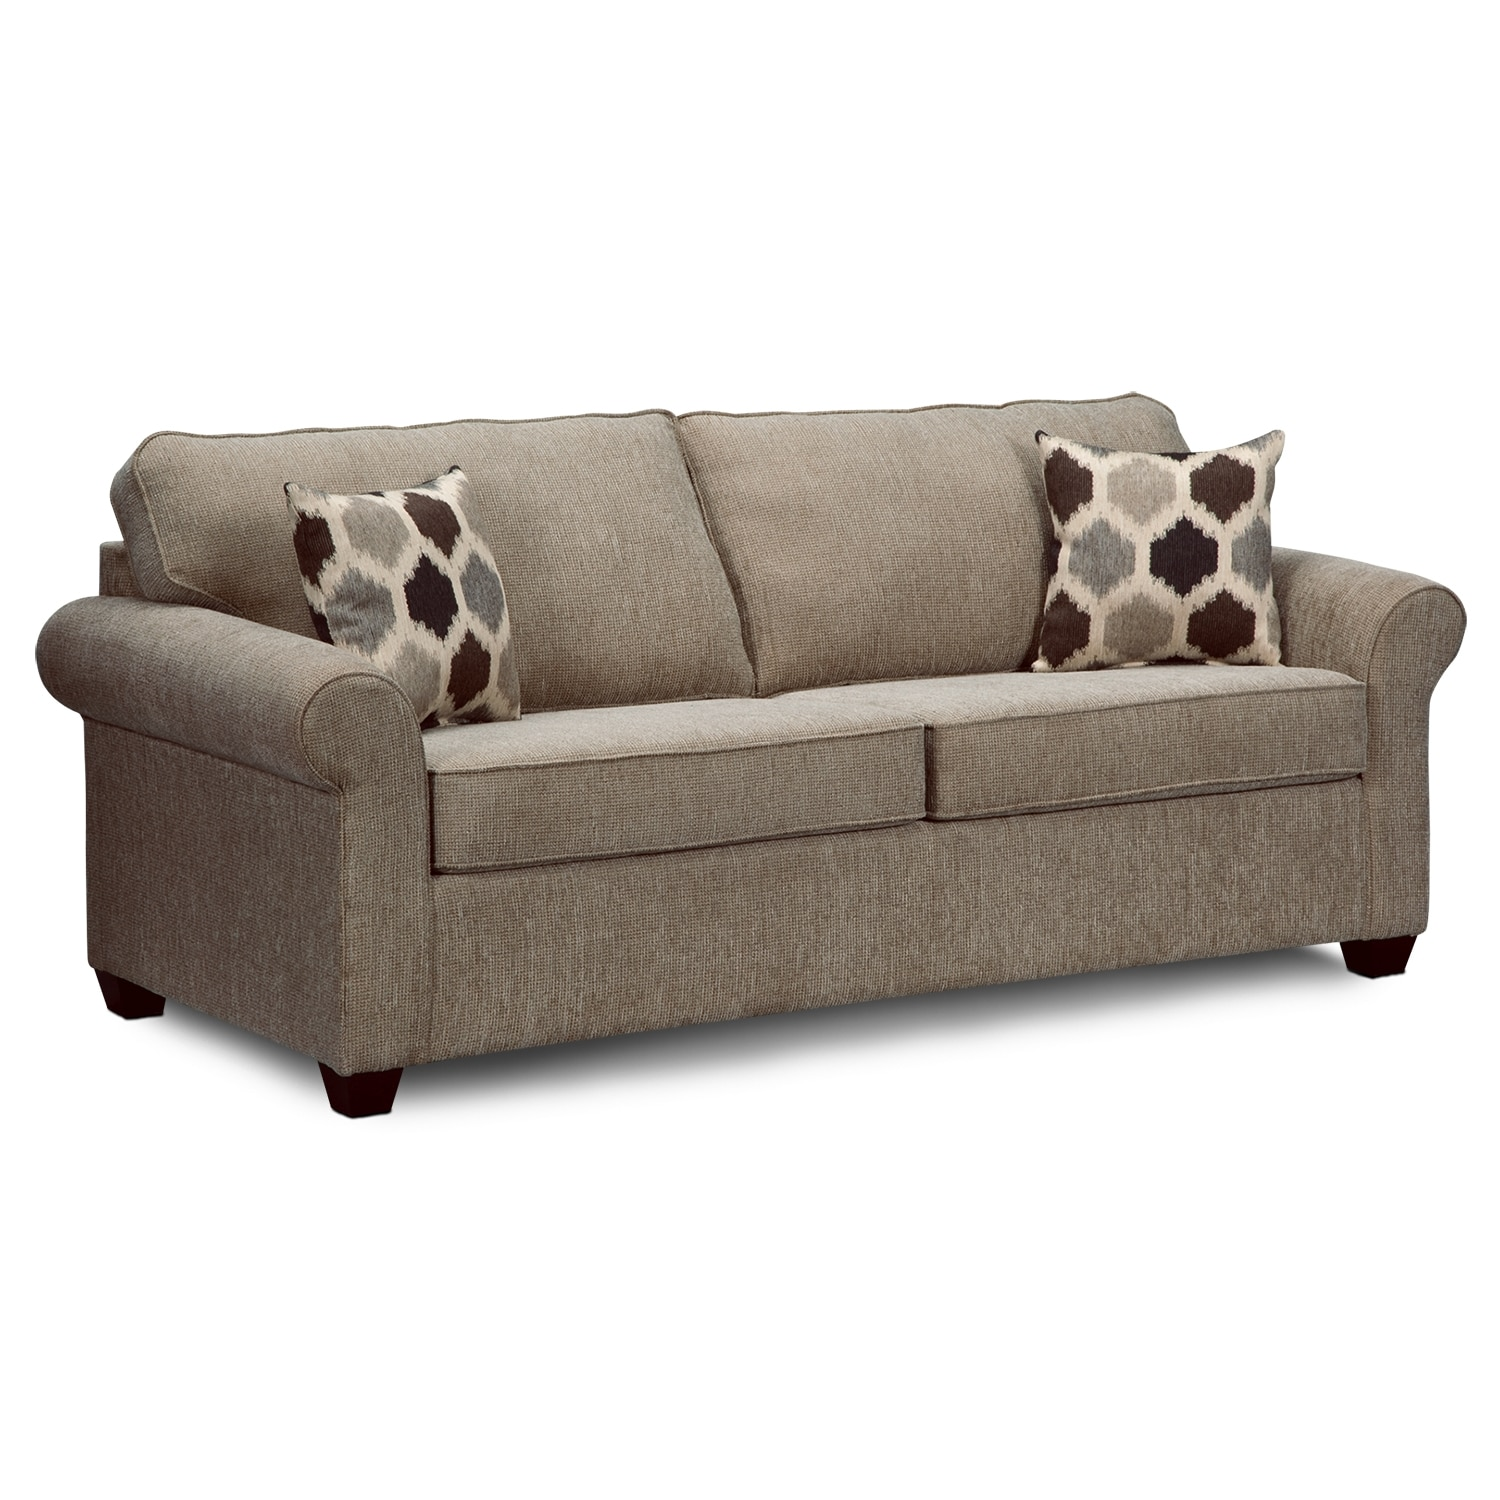 Fletcher queen sleeper sofa value city furniture for Sectional sofa with recliner and queen sleeper